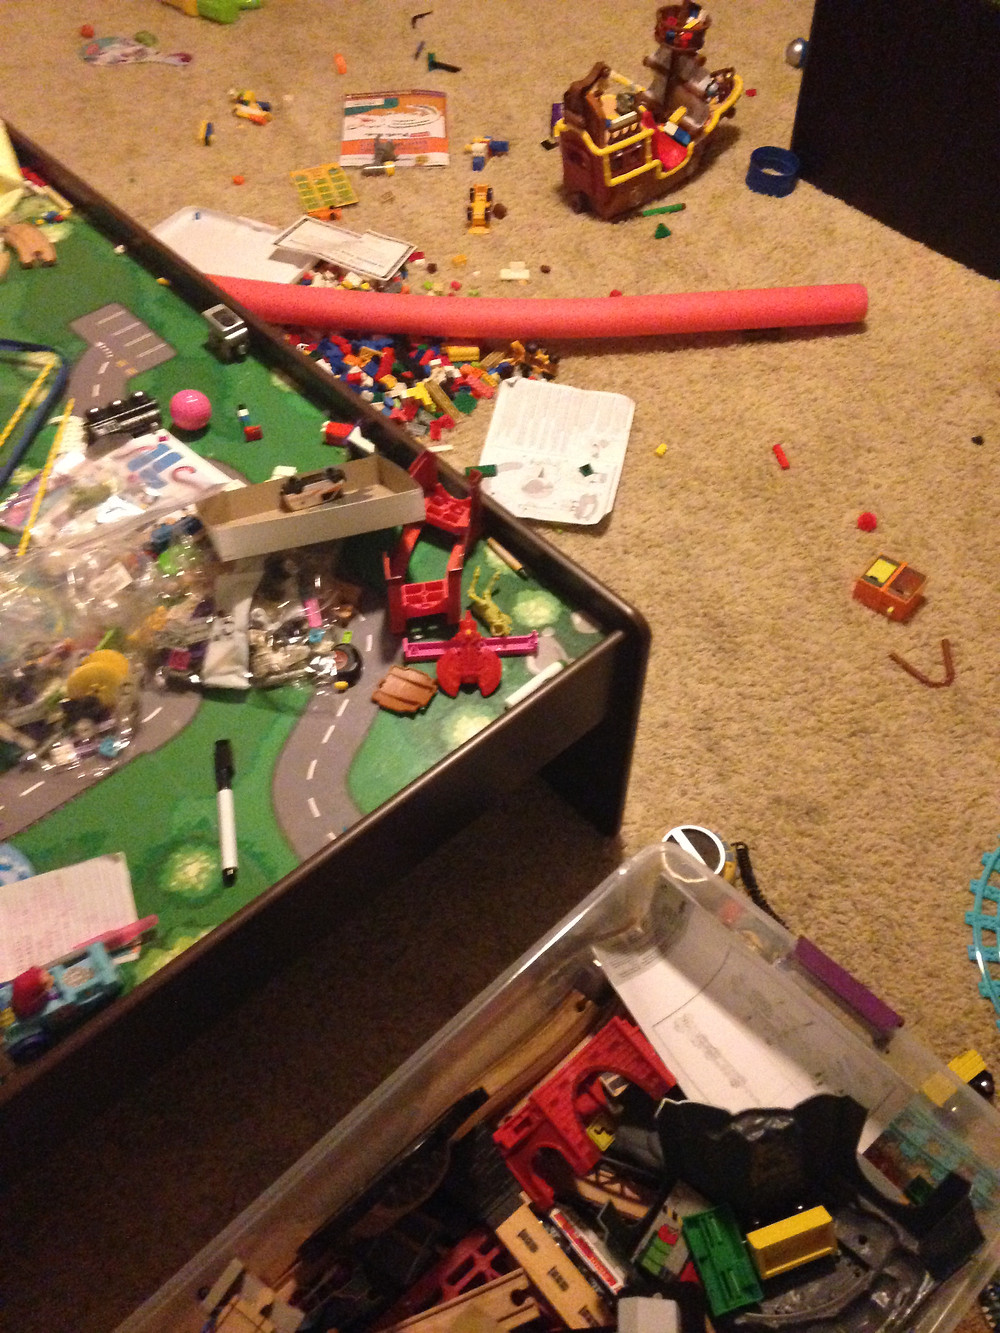 The play room but other rooms getting messy too...